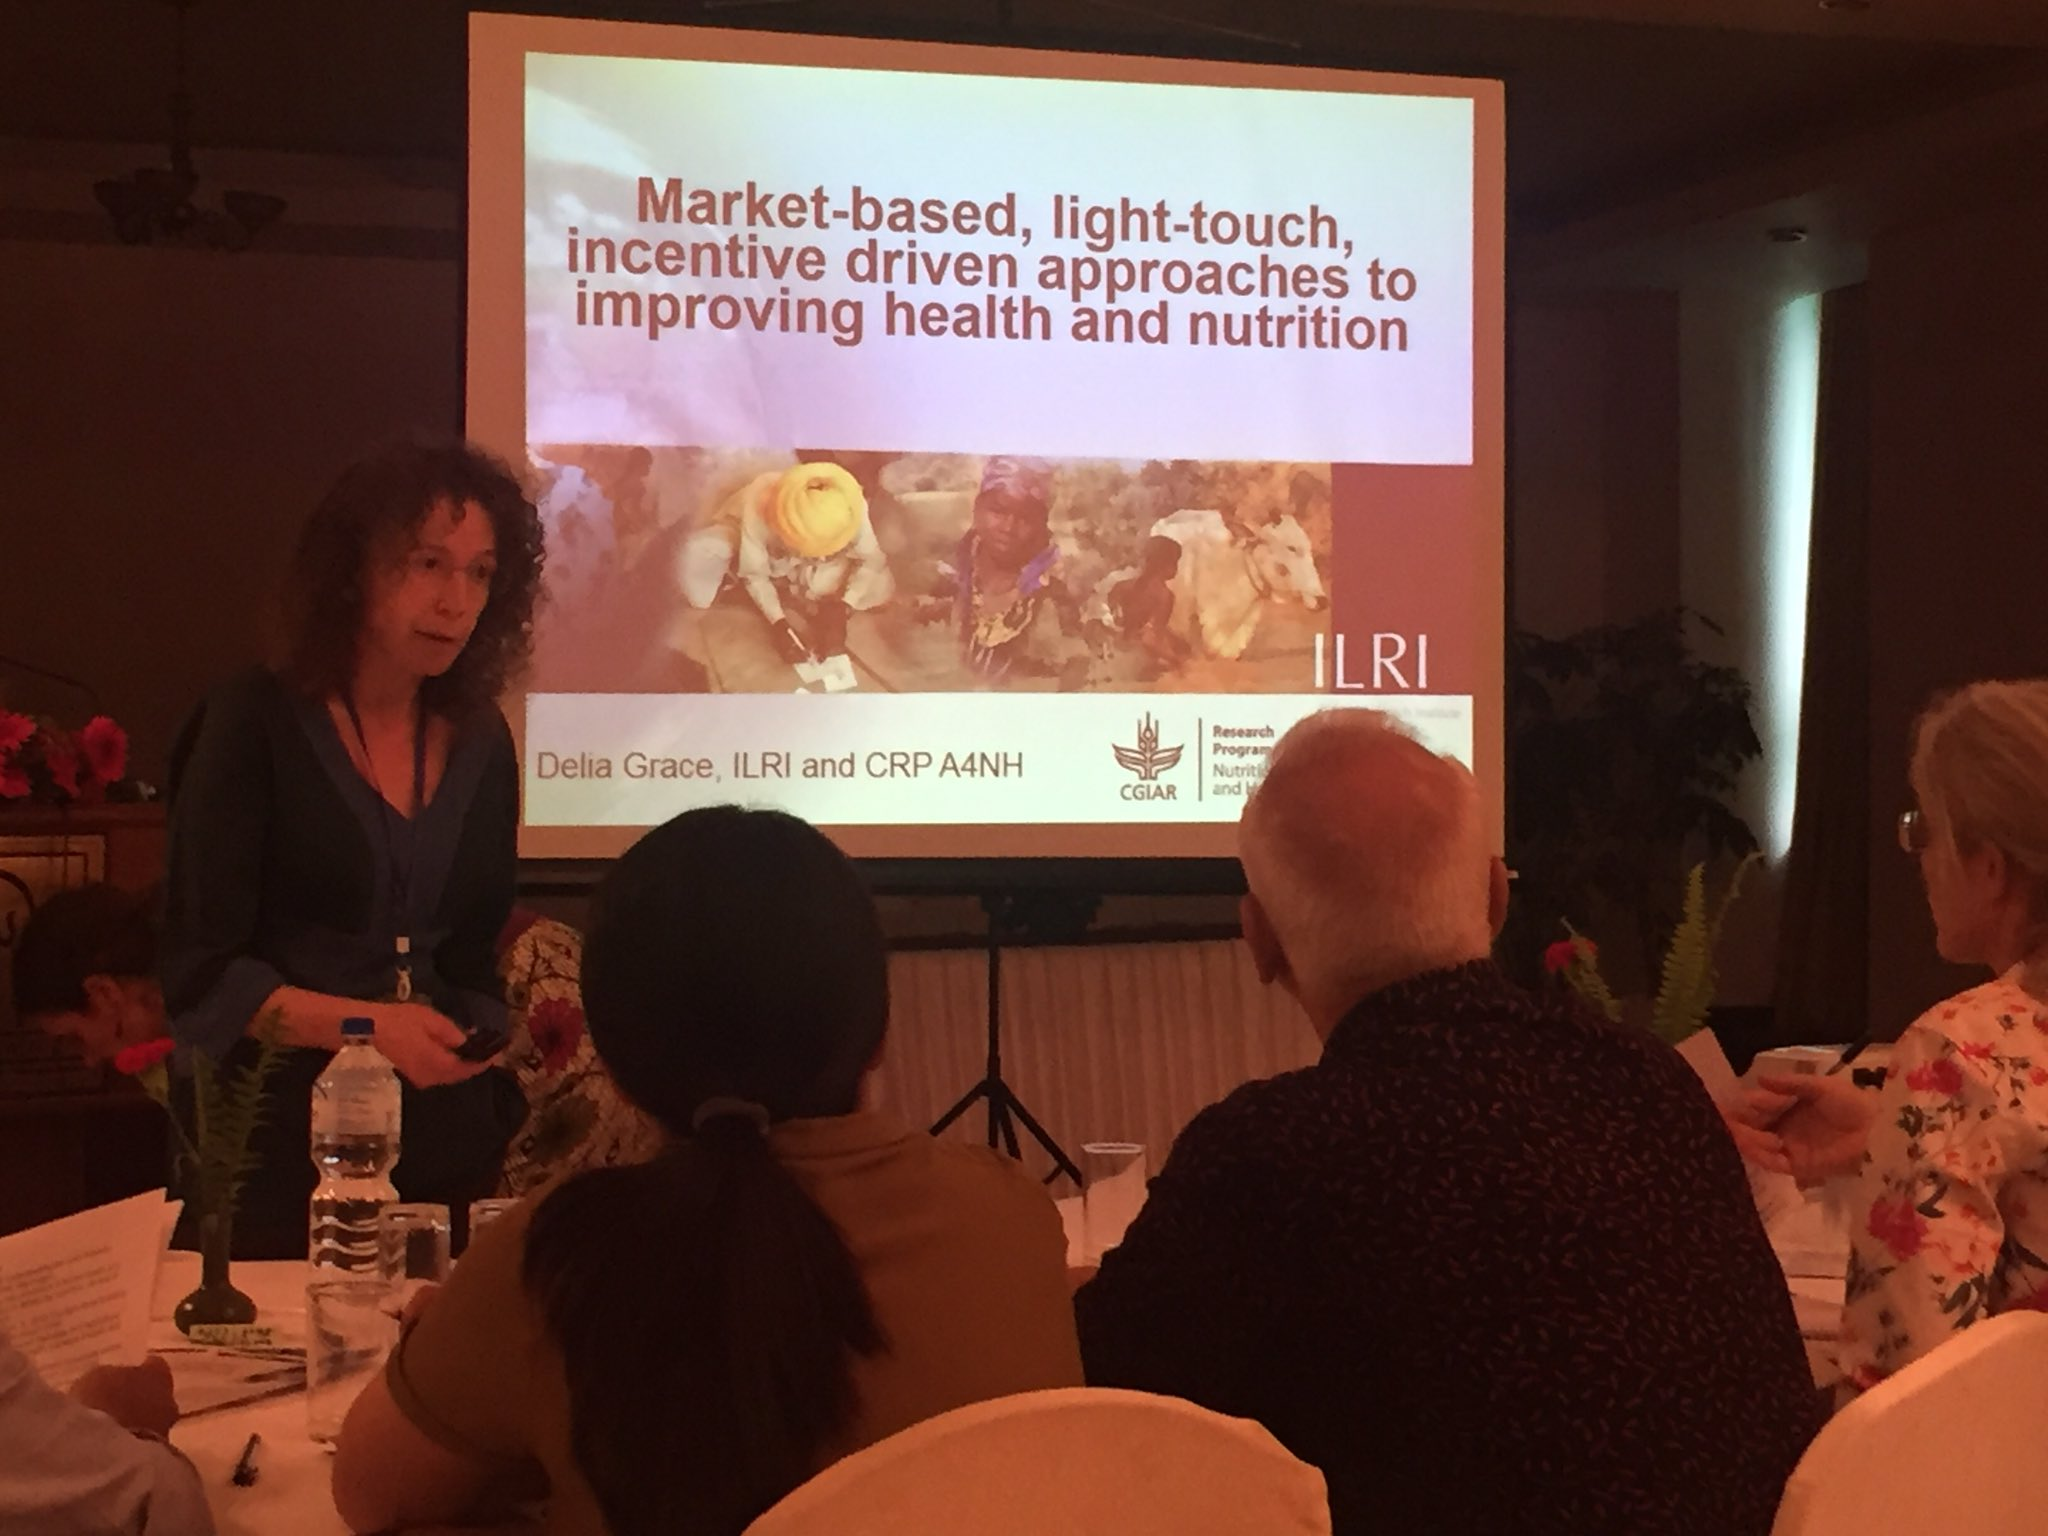 #ANH2017 Lightning Session! Let's talk about Animal Source Food: markets, incentives, practices @ILRI @LSHTMpress #AgNutSympo #A4NHResearch https://t.co/NiXsmzA7Pk